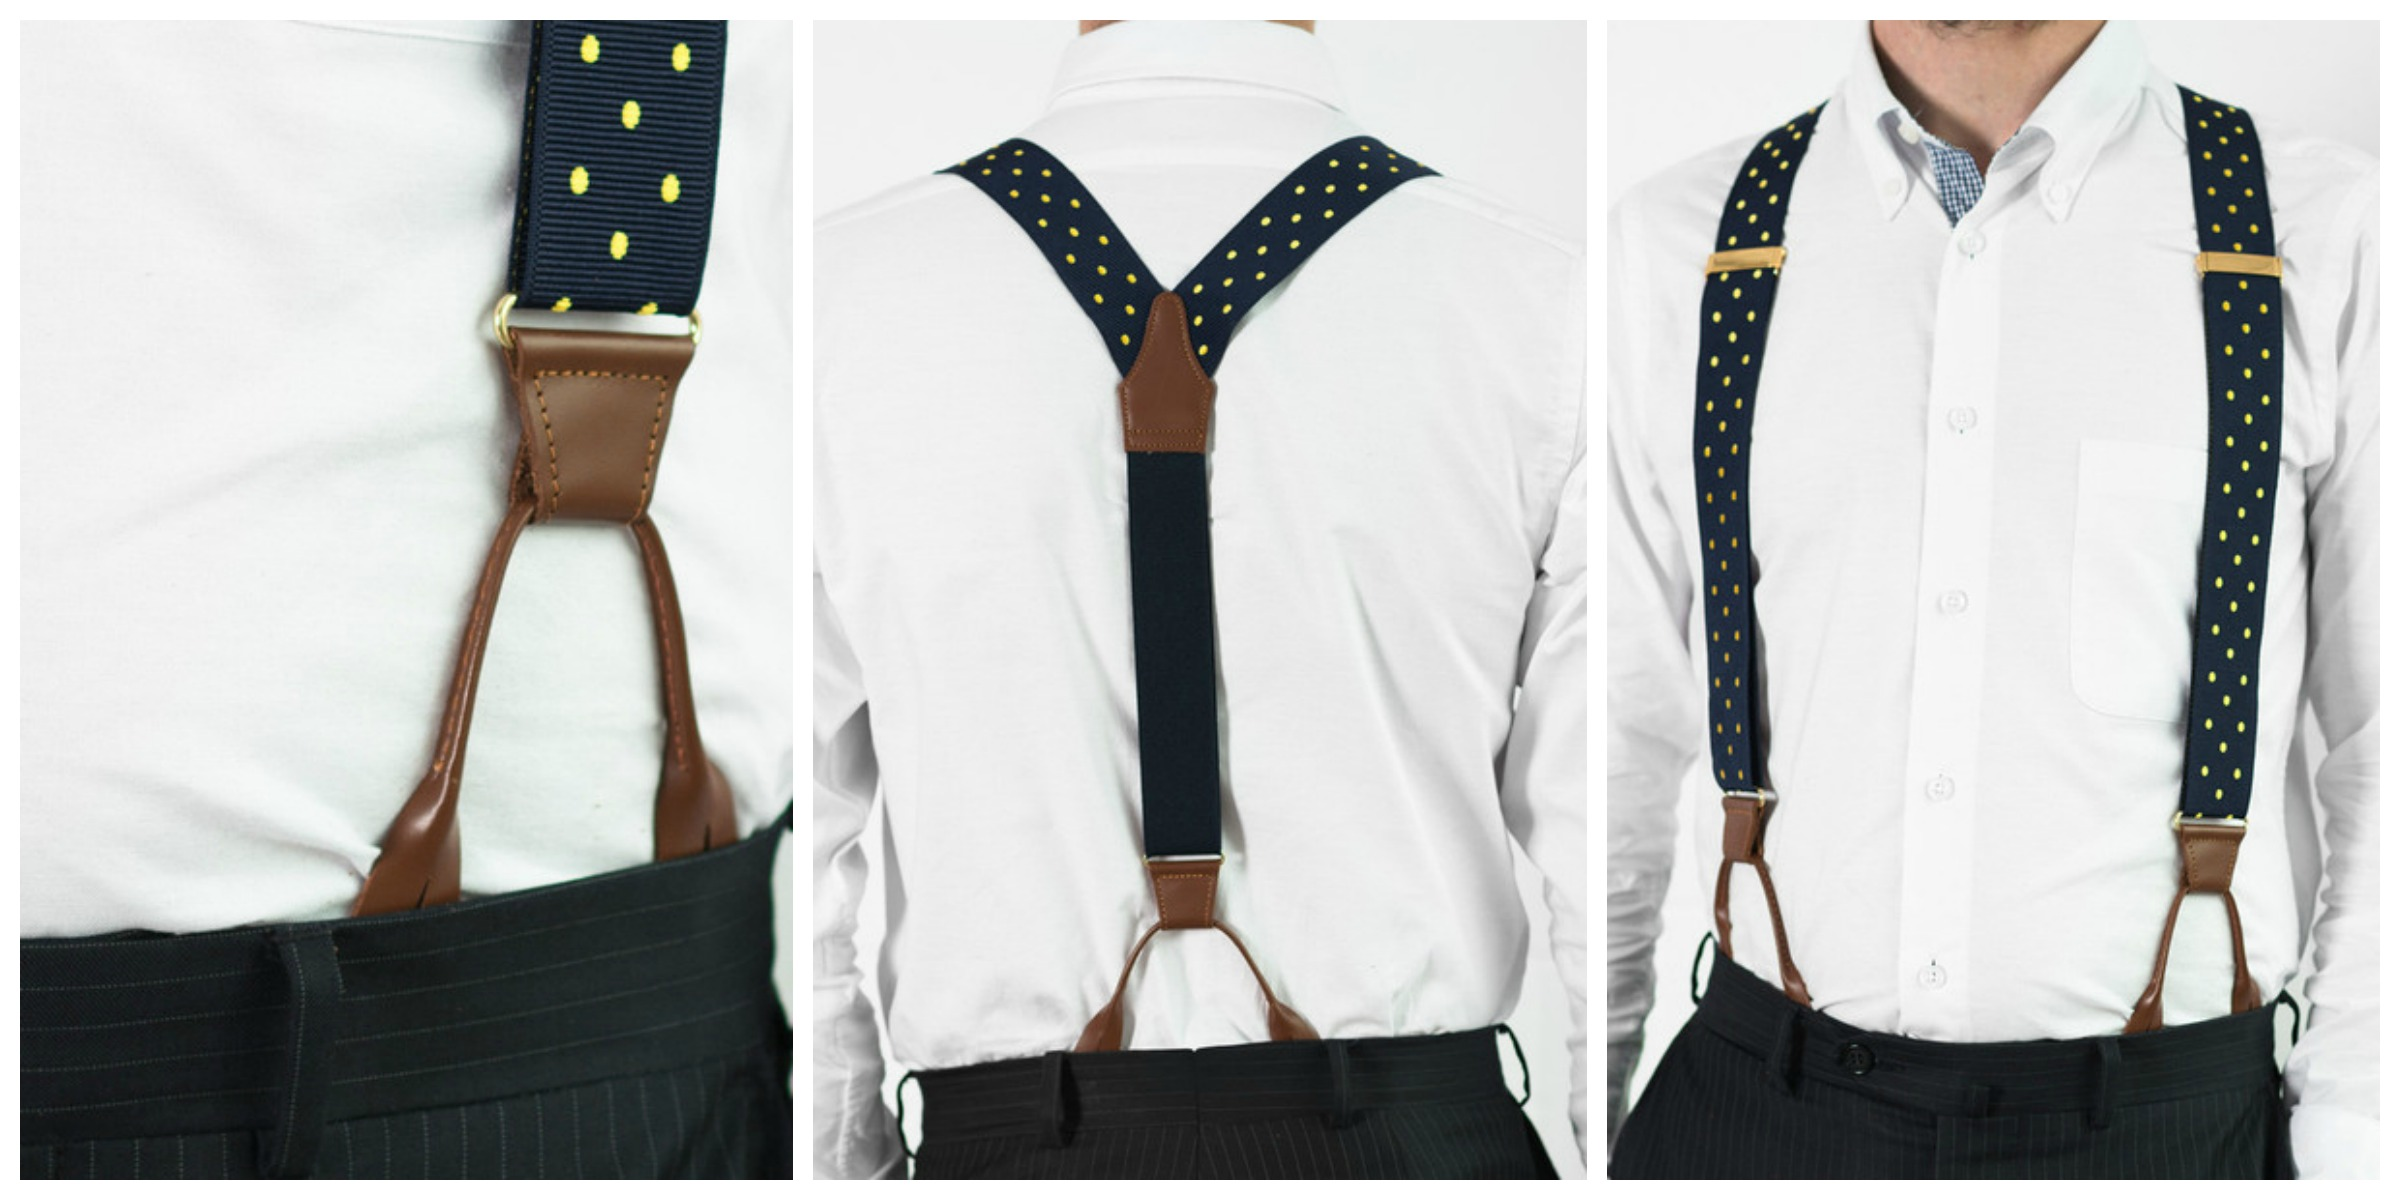 suspenders for men - jj suspenders shop KSHDLTF